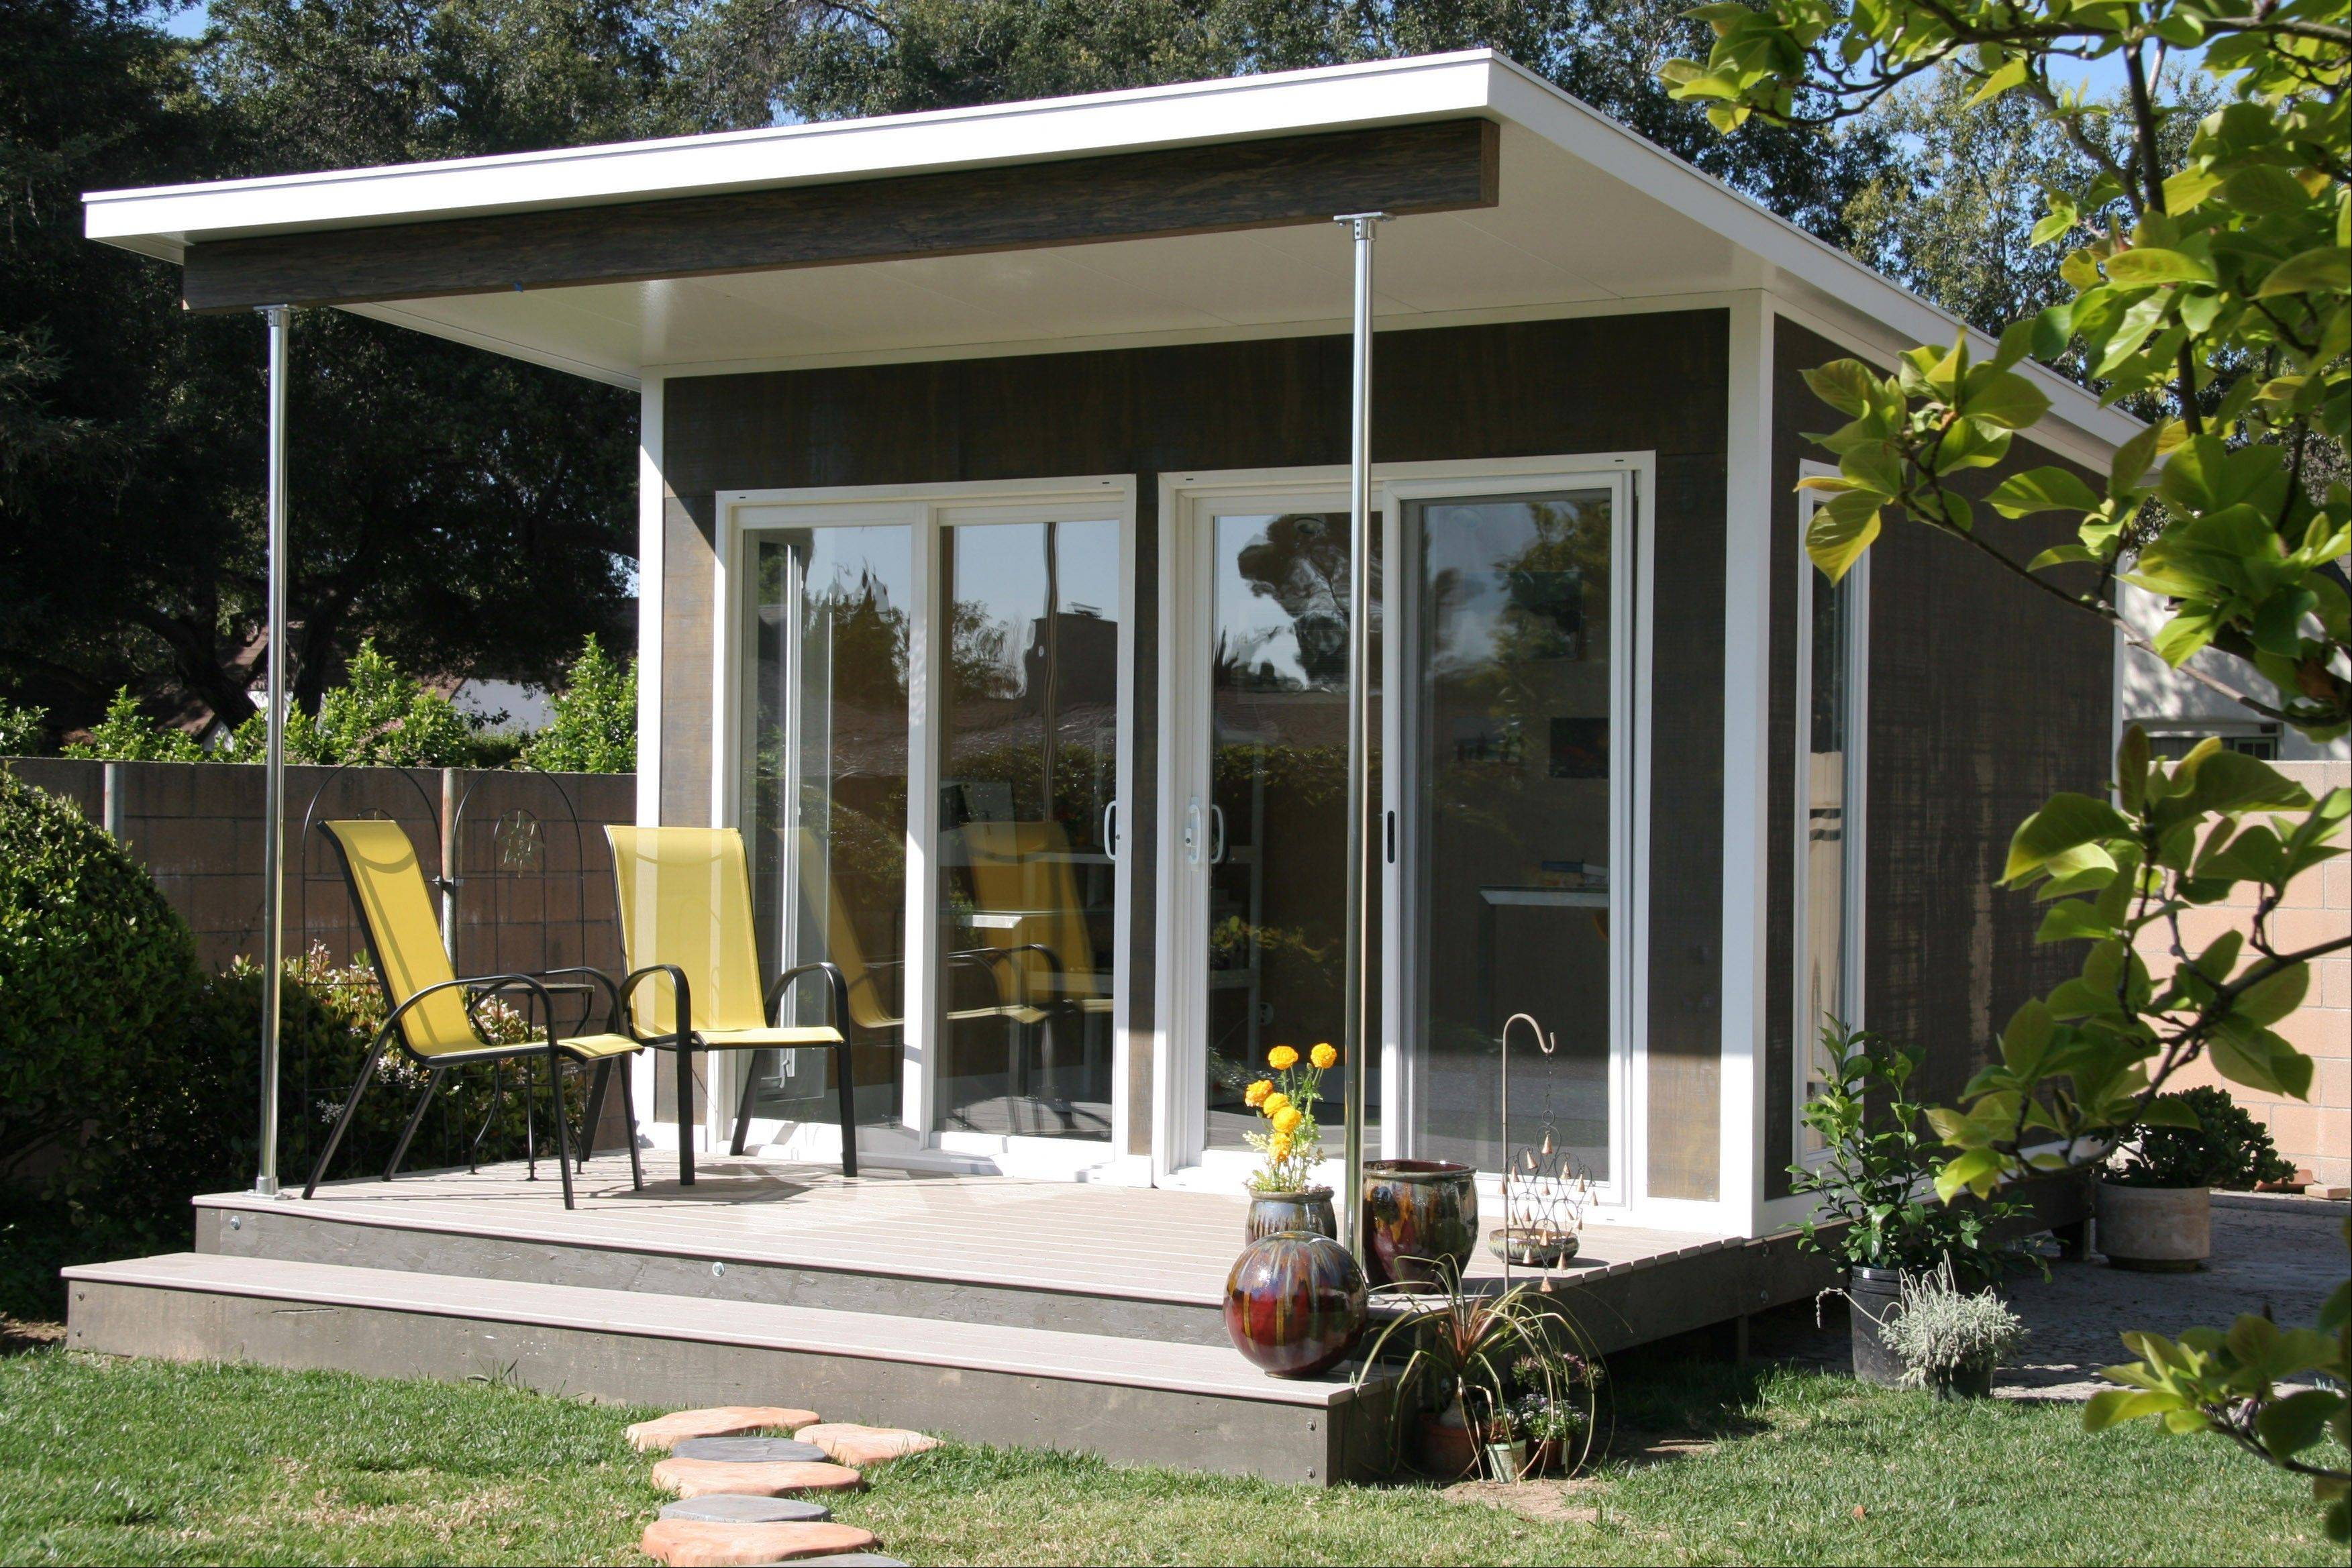 A prefabricated cabin is used as a backyard artist studio in Pasadena, Calif. The Zip model by Cabin Fever in Miami is shipped flat and can be assembled in just a few days.